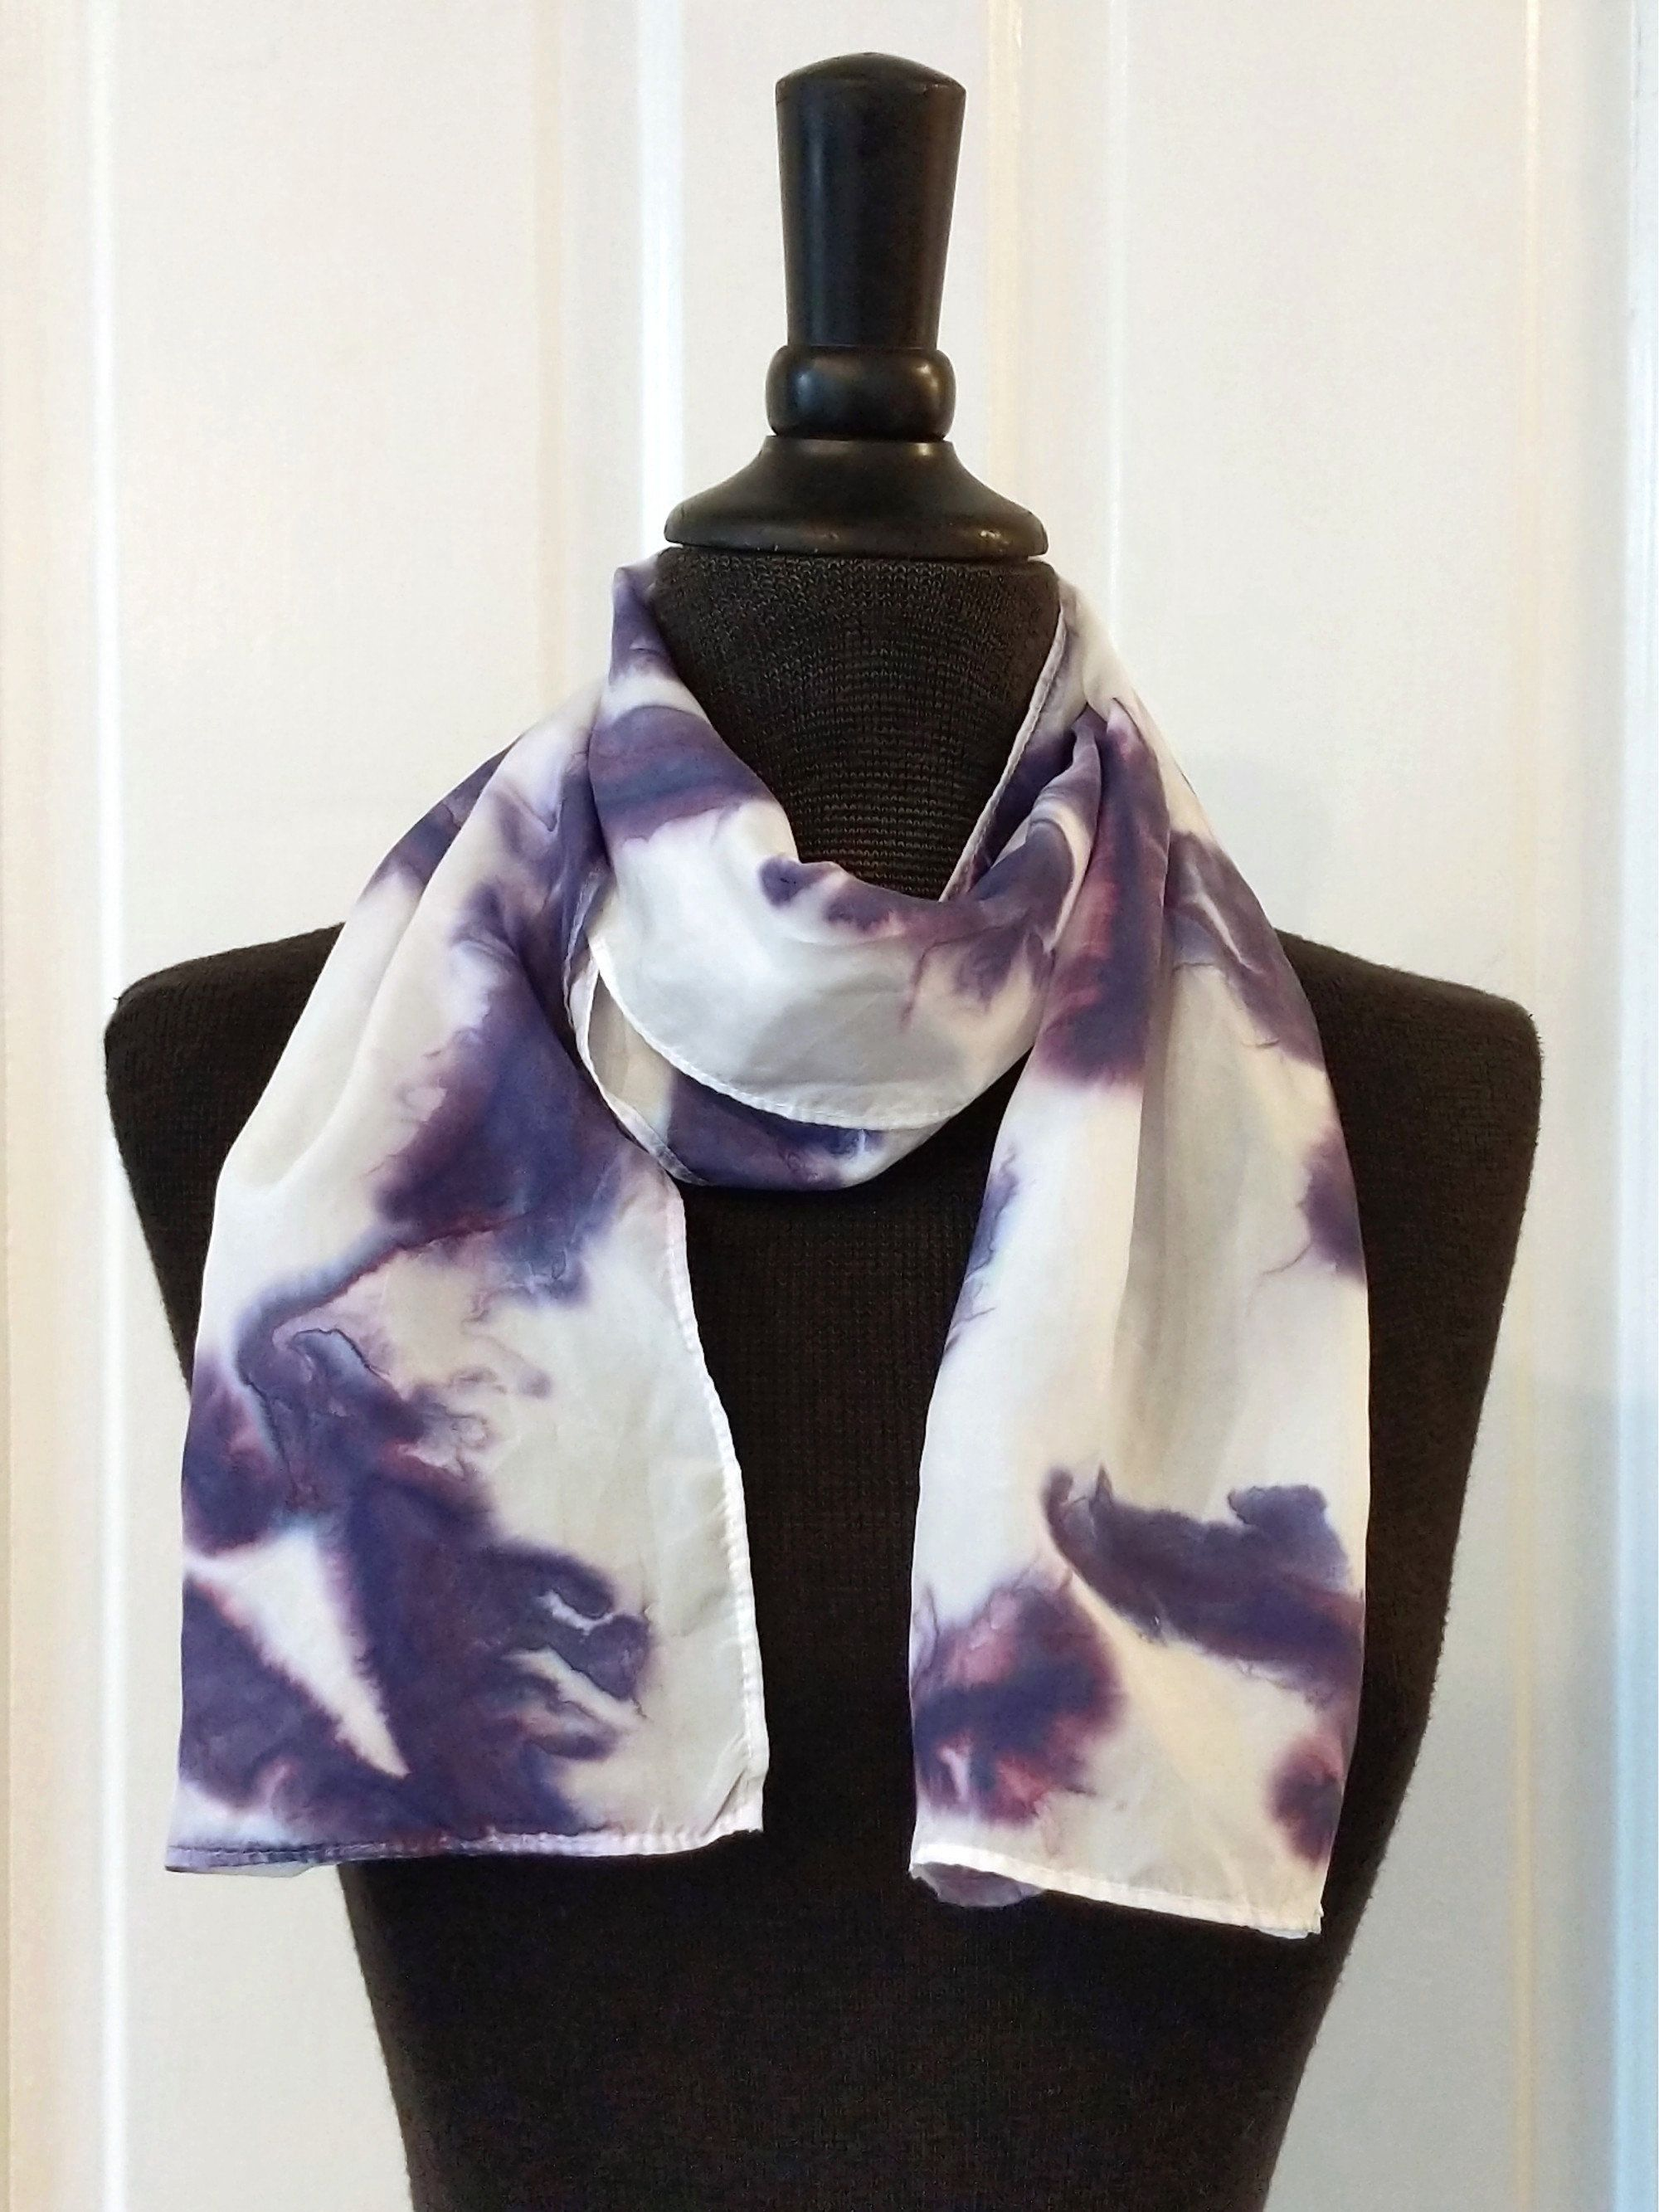 Small Silk Scarf Handpainted In Deep Purple And White 100 Silk Scarf Small Narrow 8x52 Inches Hand Washable Gift Idea For Woman Small Silk Scarf Beautiful Silk Scarves How To Dye Fabric